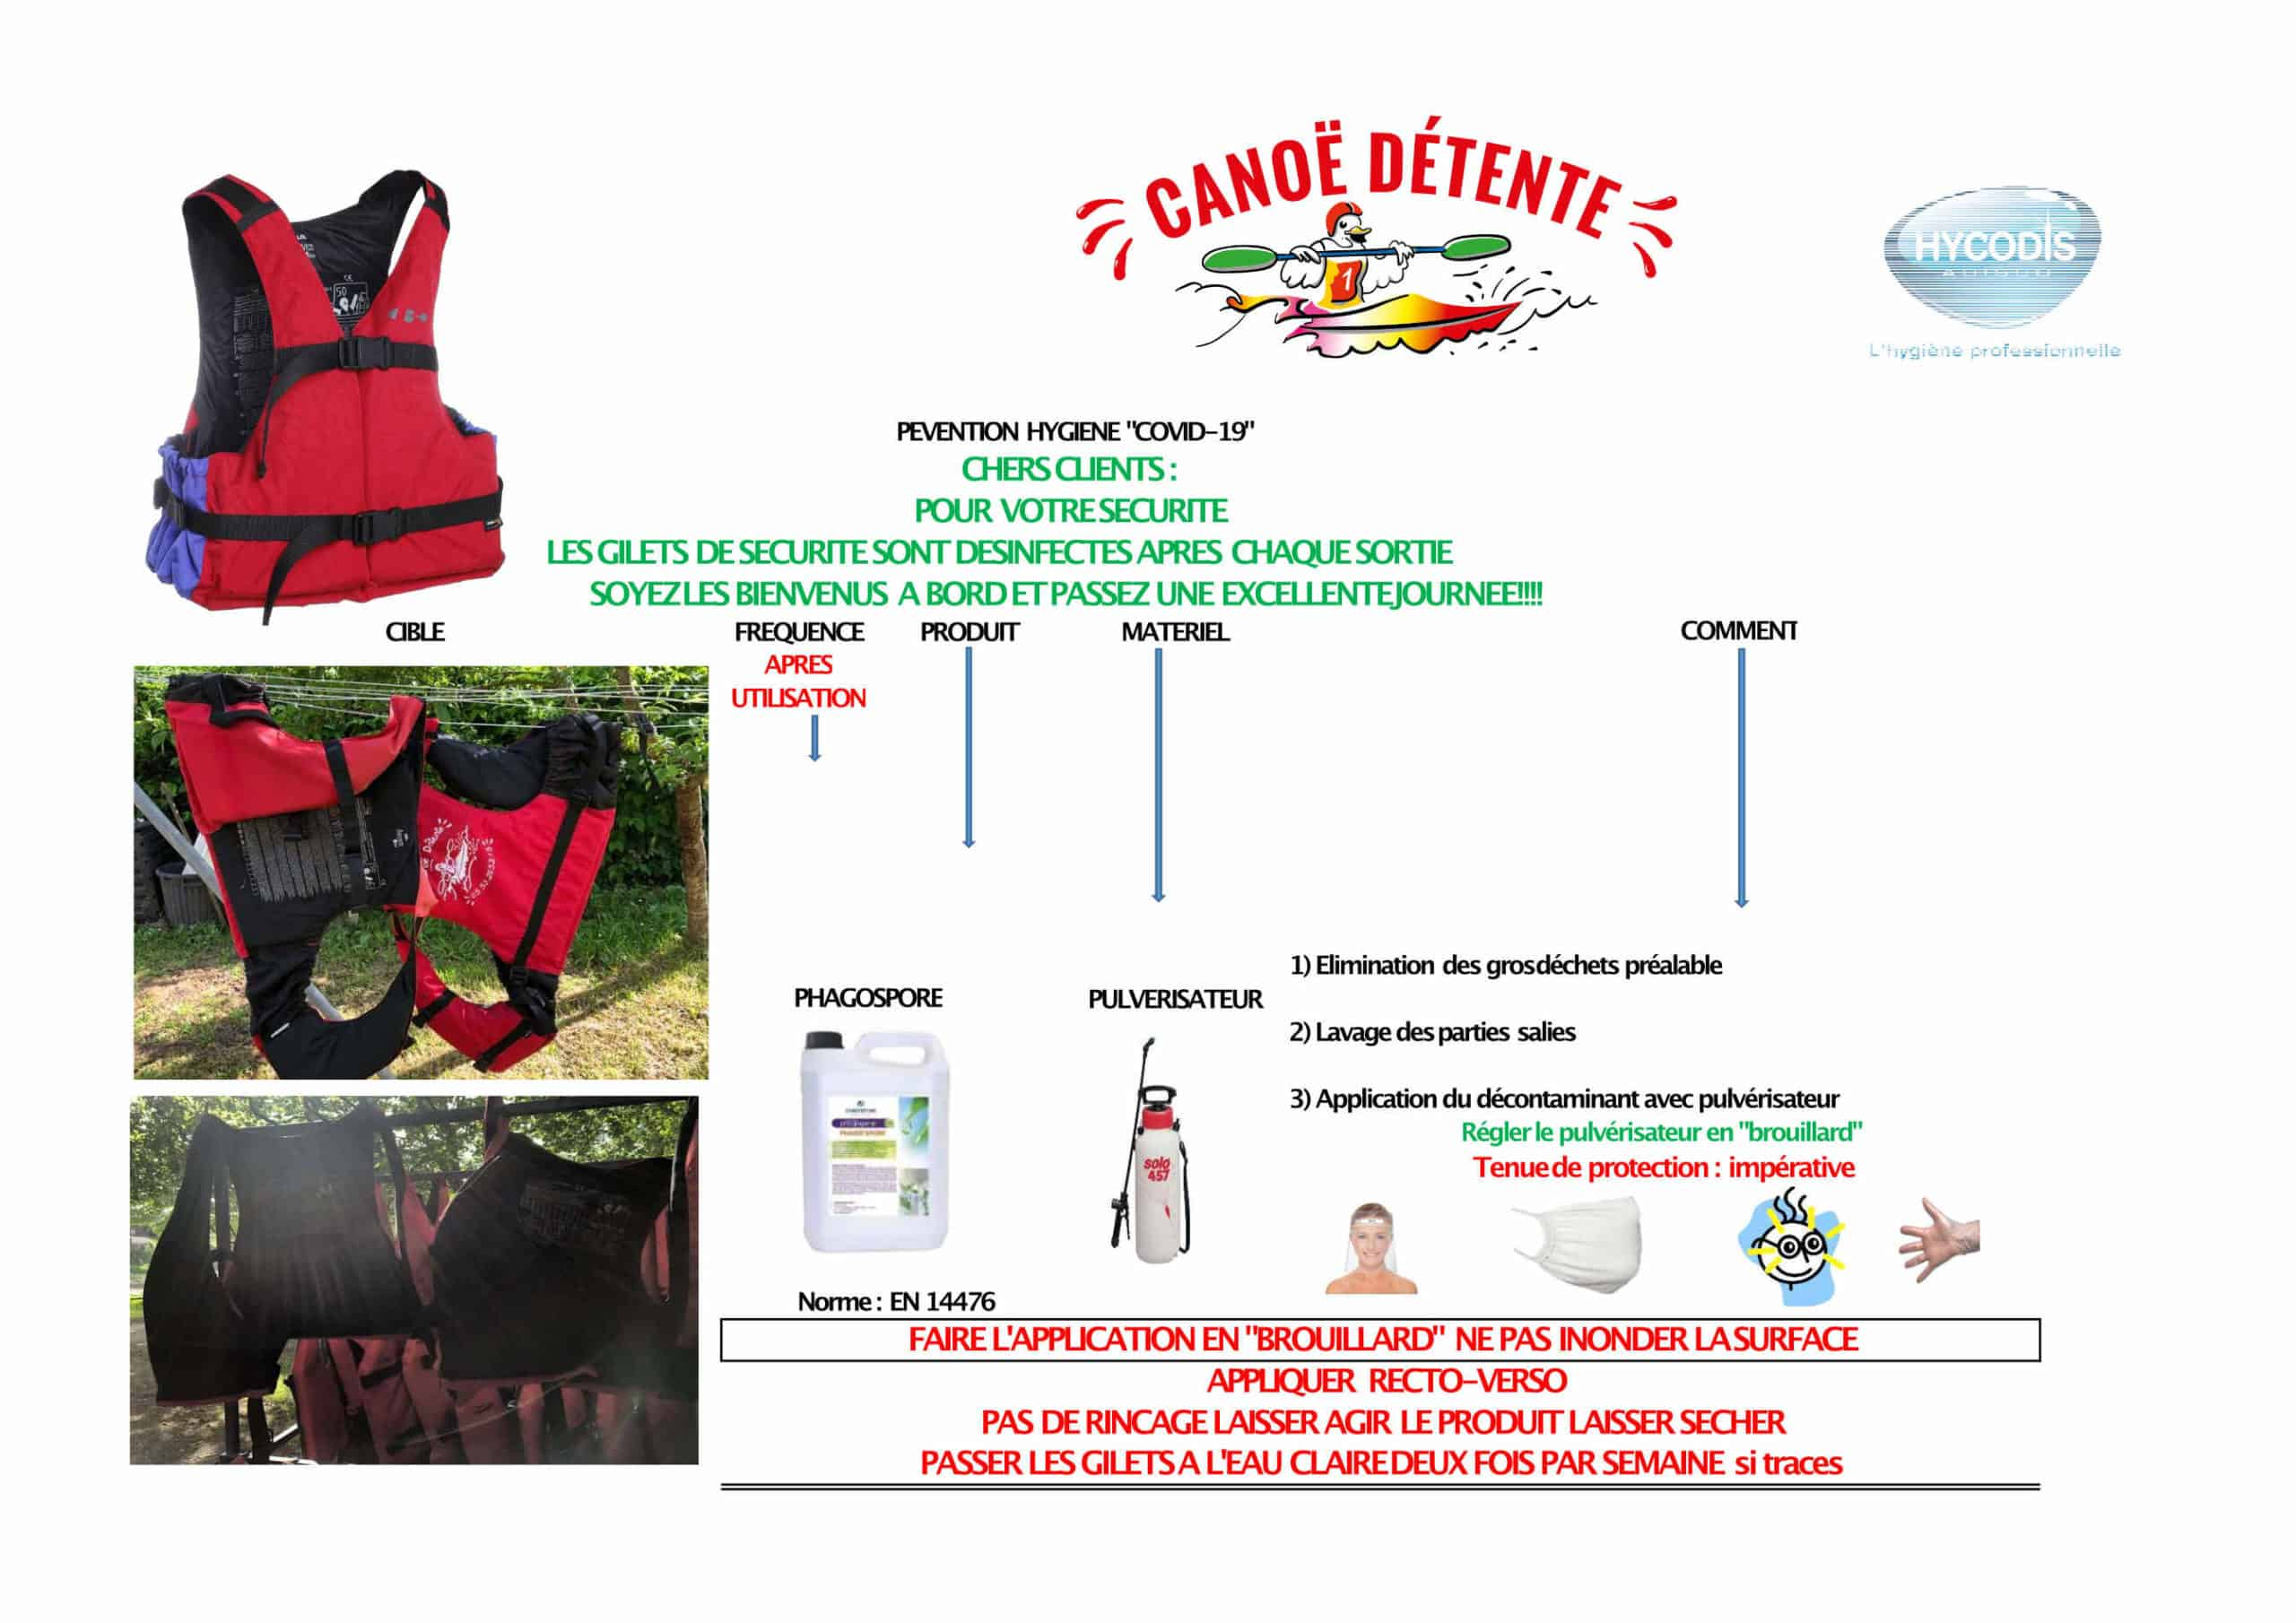 PROTOCOLE GILETS - DETENTE - DECOUVERTE